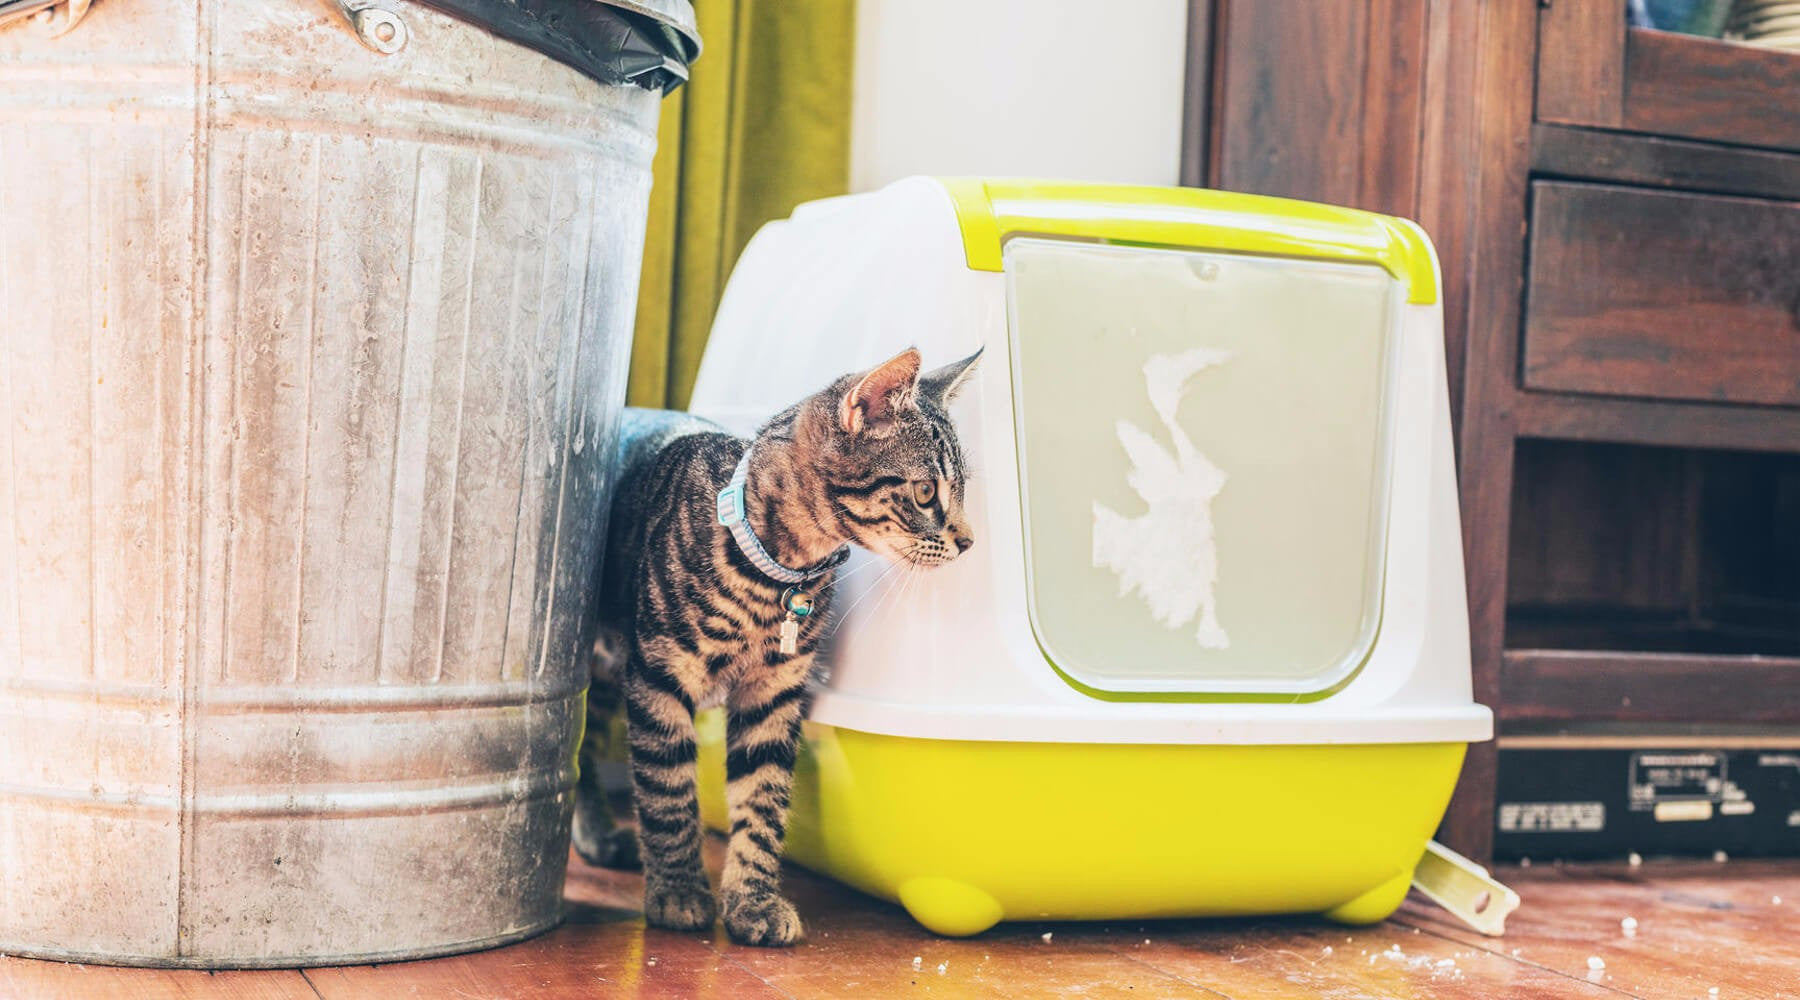 5 Simple Solutions to Prevent Scattered Litter in Your Home